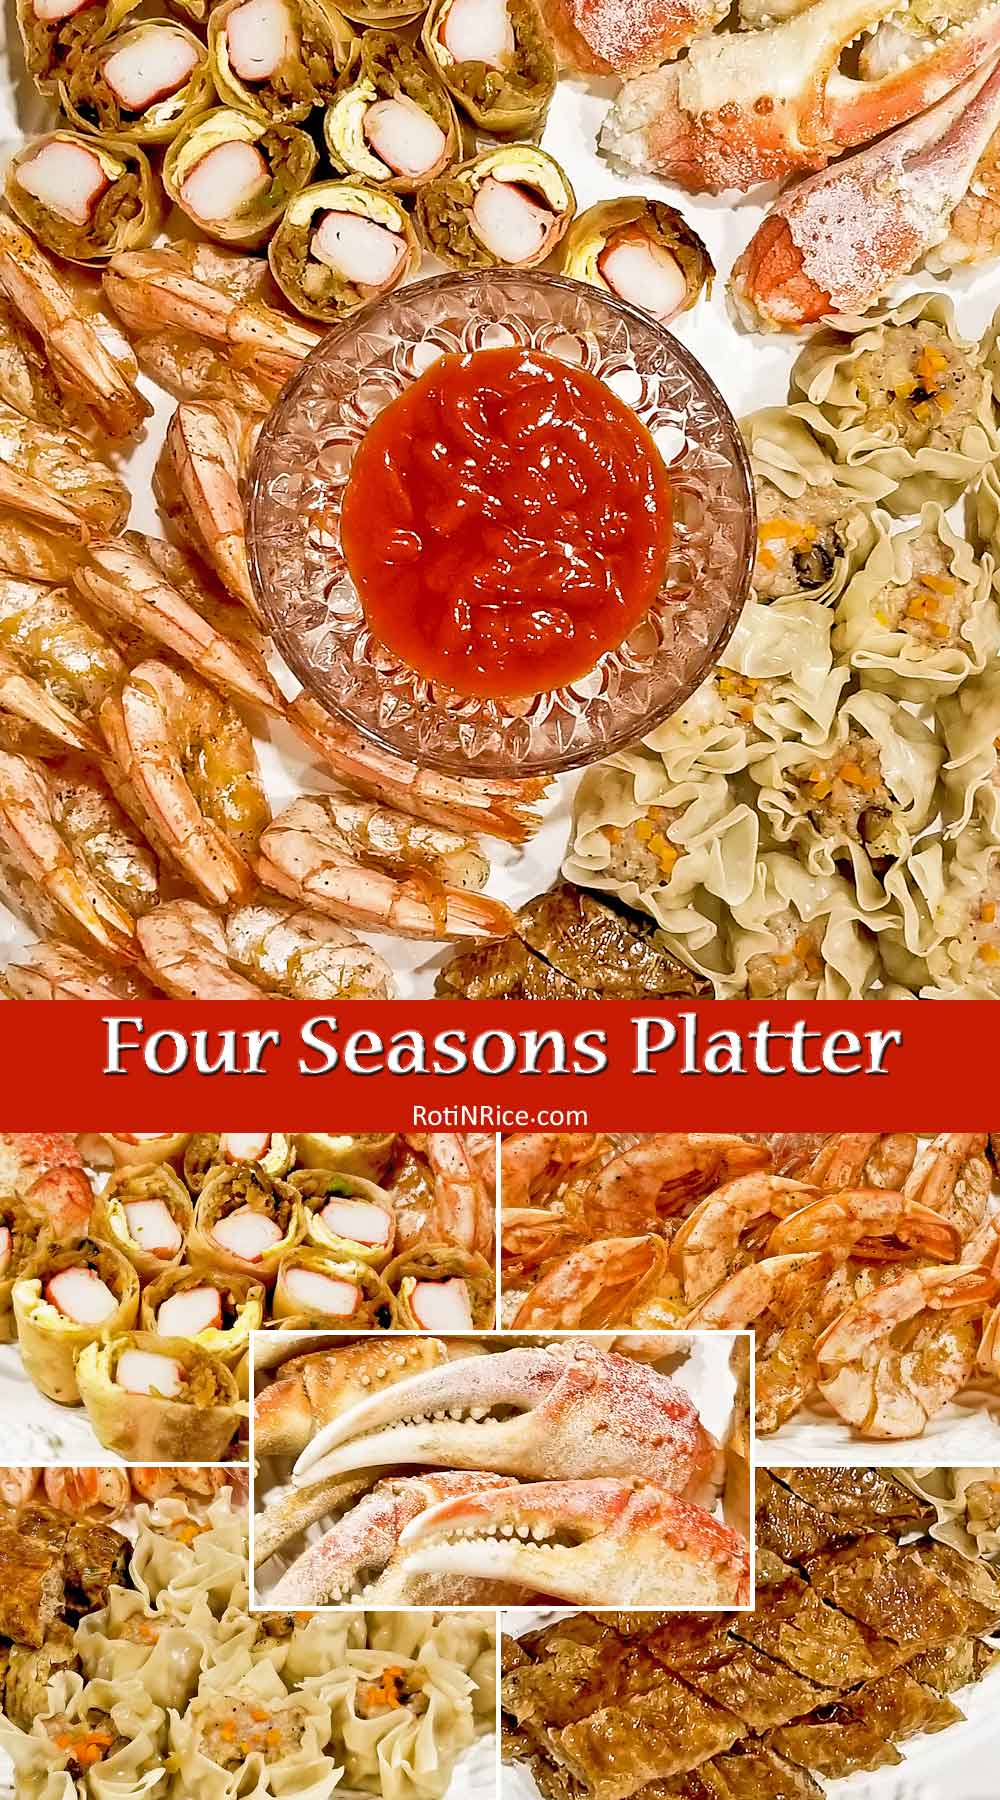 Make this Four Seasons Platter with special tri-filling spring rolls plus pan seared butterfly shrimps, siu mai (shumai), lobak (five-spice meat rolls), and boiled crab claws your feasting centerpiece. It is totally worth the effort! | RotiNRice.com